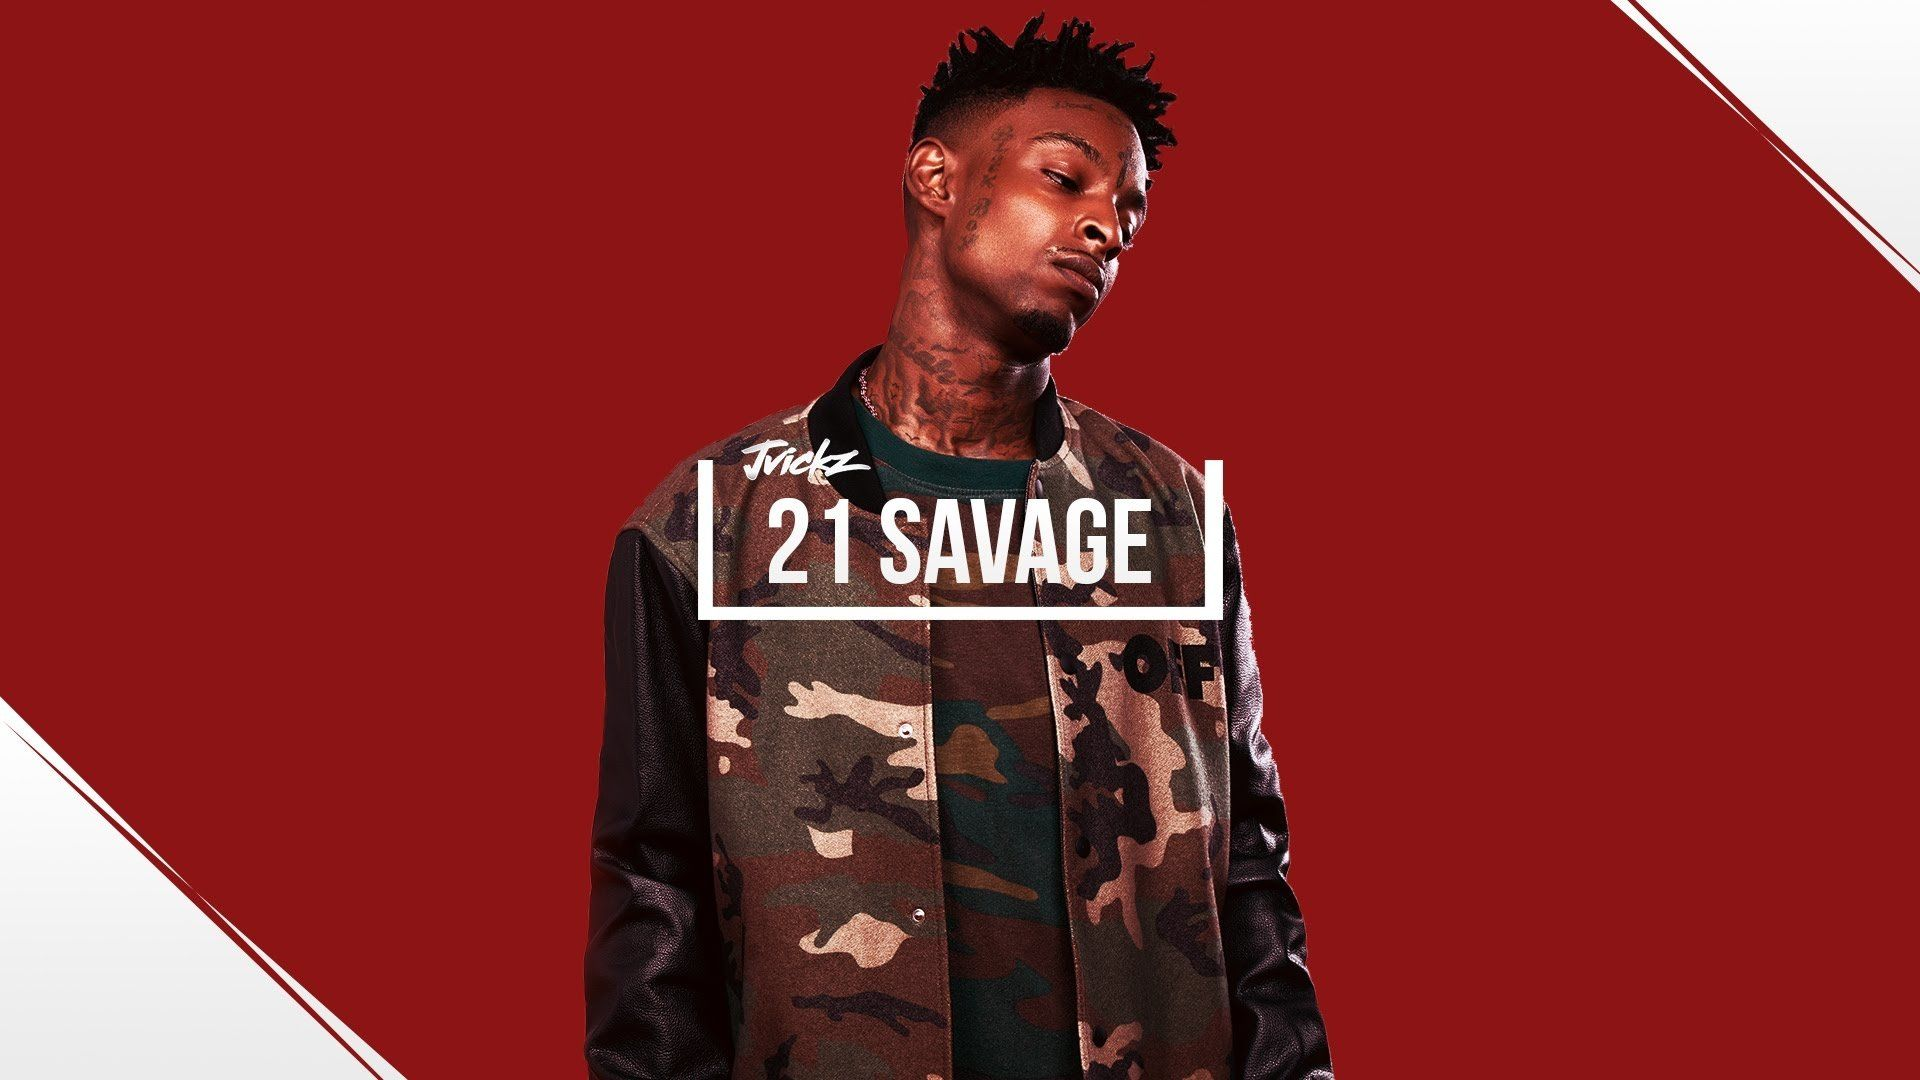 1920x1080 10 21 Savage HD Wallpapers | Background Images - Wallpaper Abyss